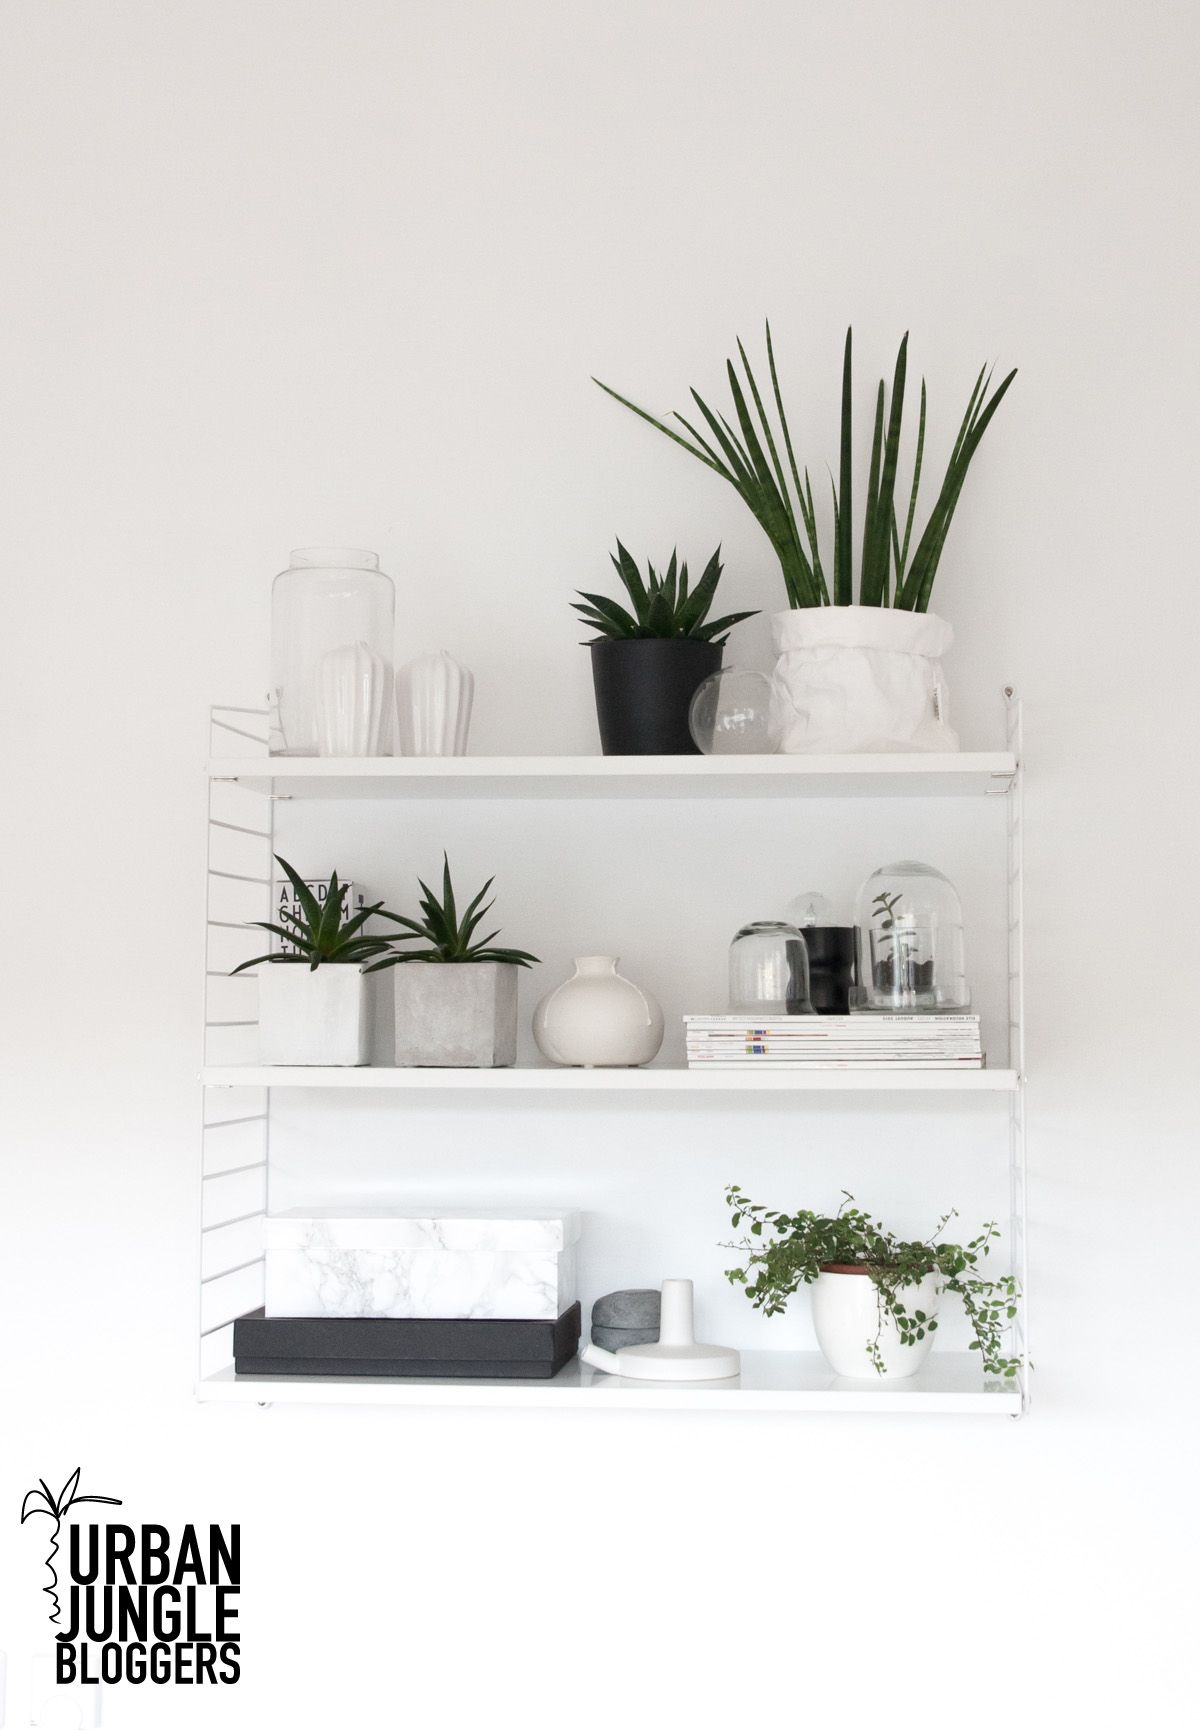 Urban Jungle Decorating Kitchen: Urban Jungle Bloggers: My Plant Shelfie By @anutammiste